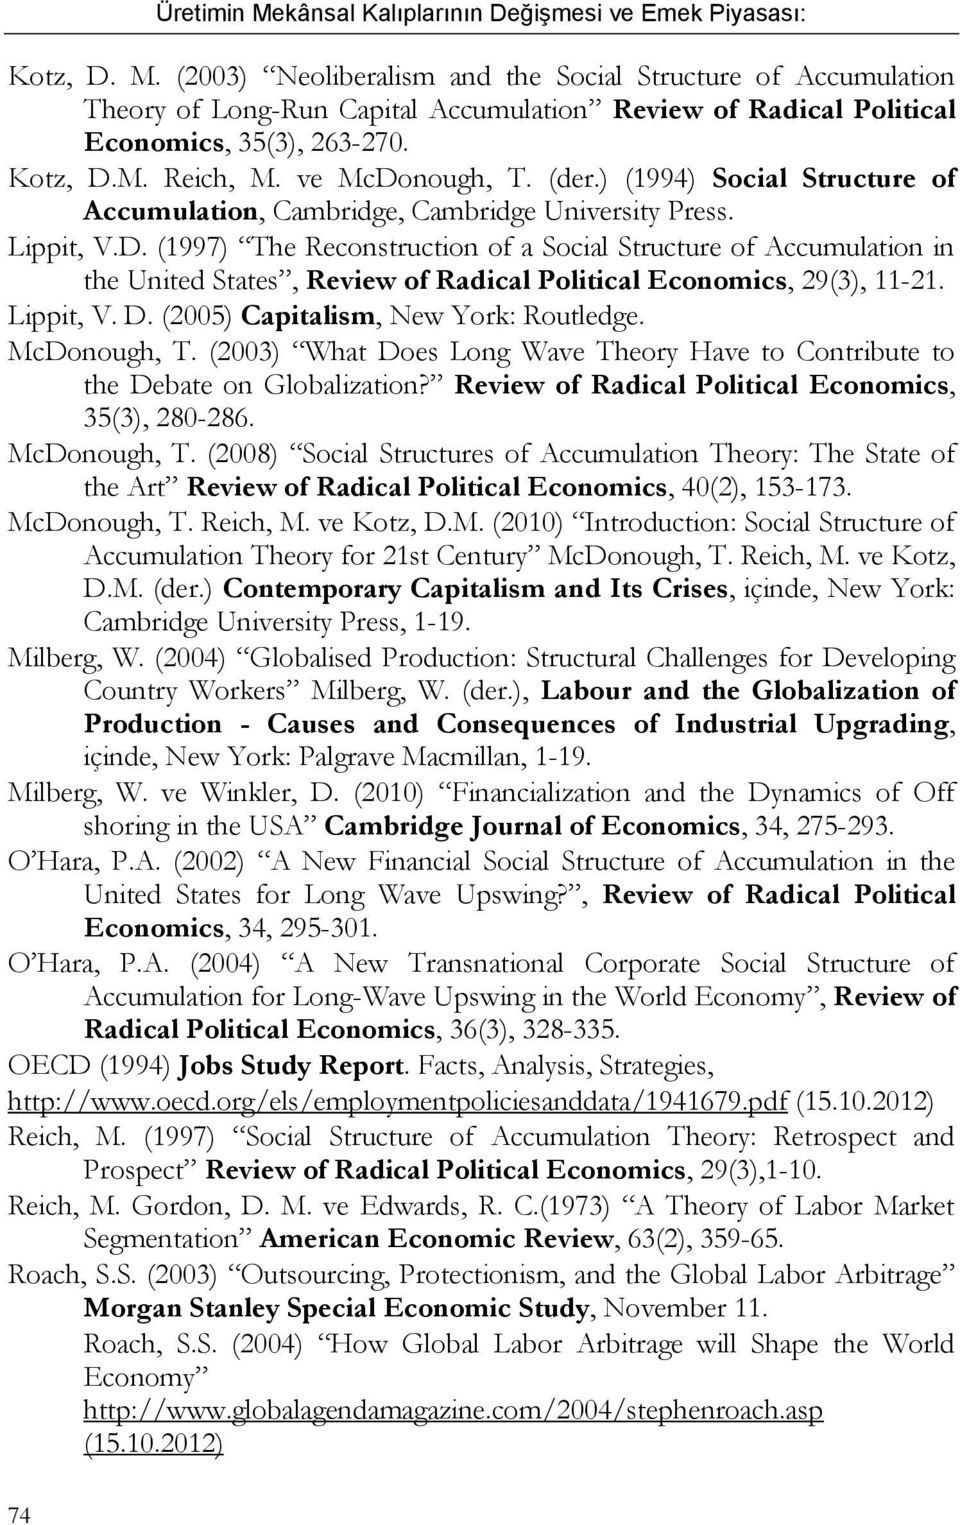 Lippit, V. D. (2005) Capitalism, New York: Routledge. McDonough, T. (2003) What Does Long Wave Theory Have to Contribute to the Debate on Globalization?